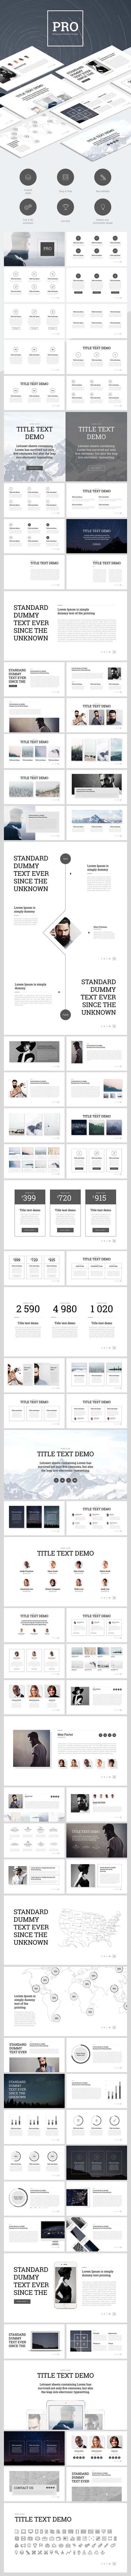 "Download: http://site2max.pro/pro-powerpoint-template/ ""PRO"" PowerPoint template #powerpoint #pptx #minimal #modern #marketing #black #white #infographic #slide #slides #pro #report #fashion #business"